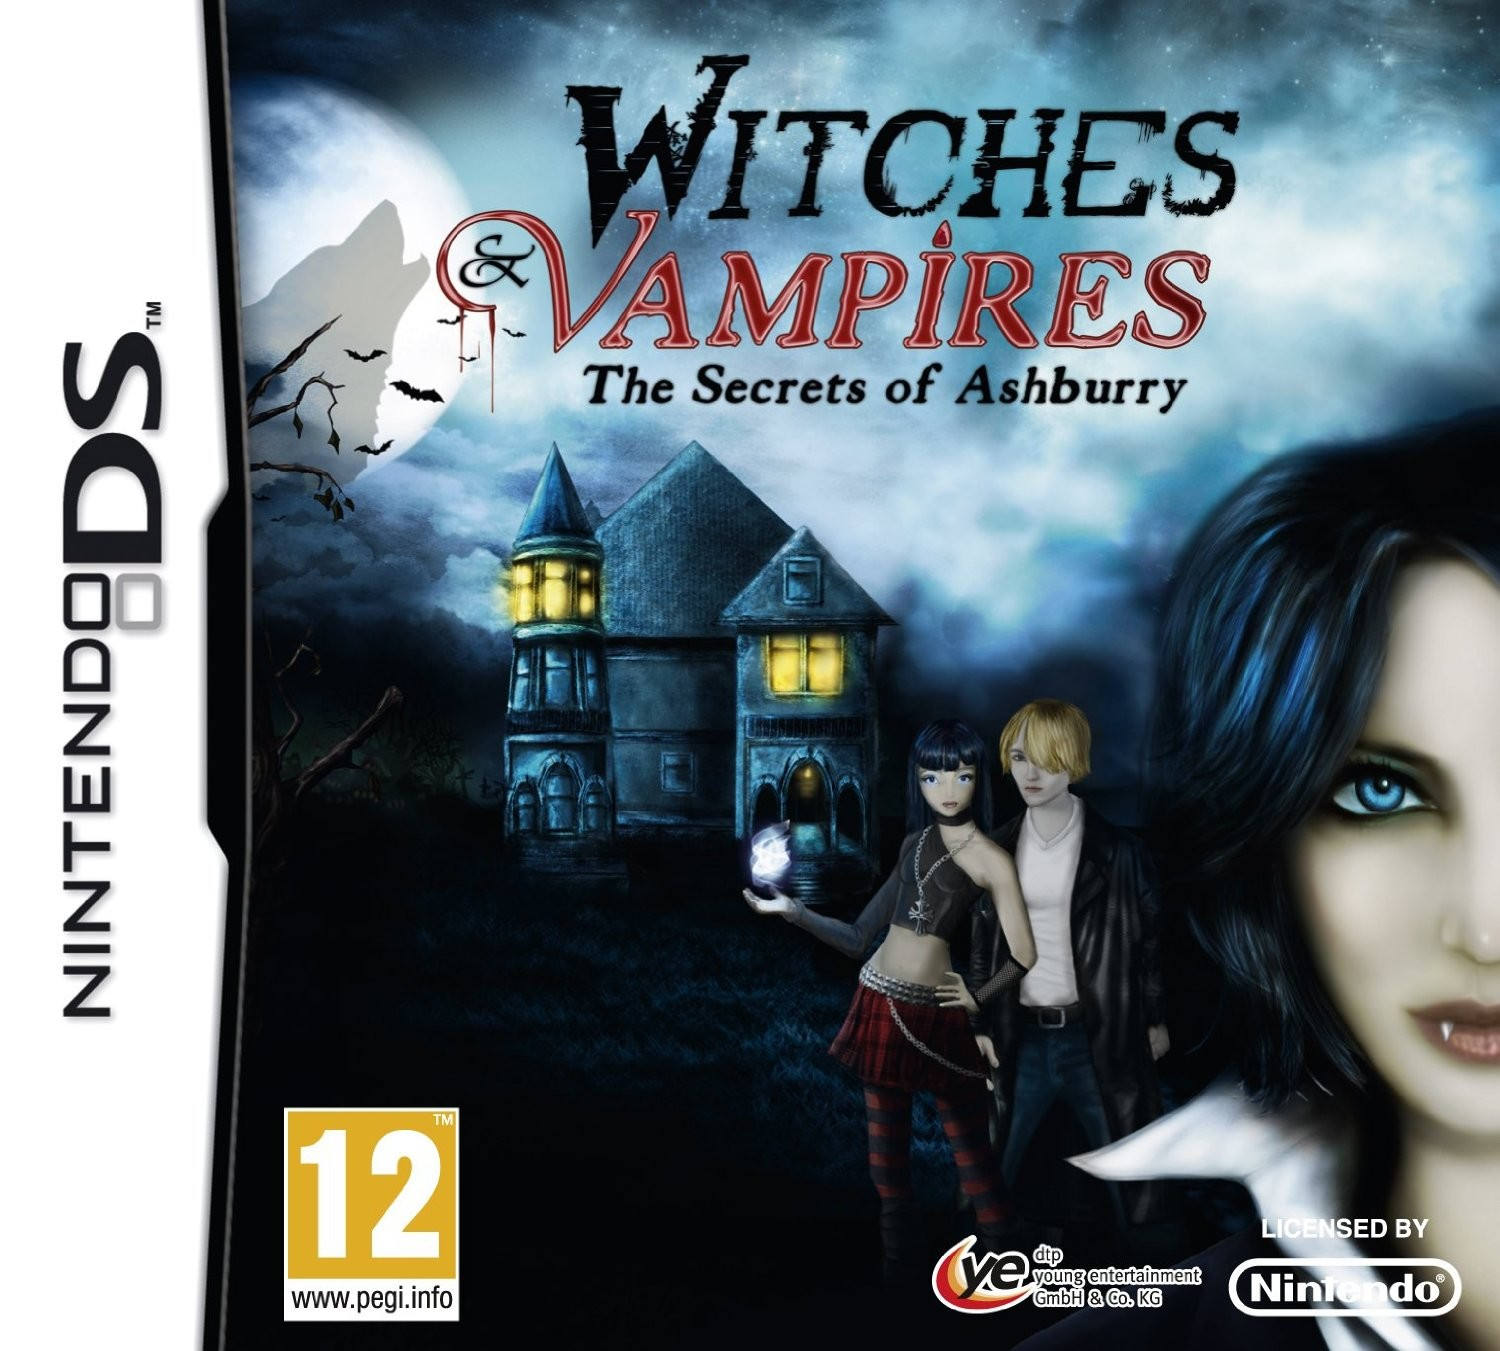 Witches & Vampires The Secrets Of Ashburry - Nintendo DS game